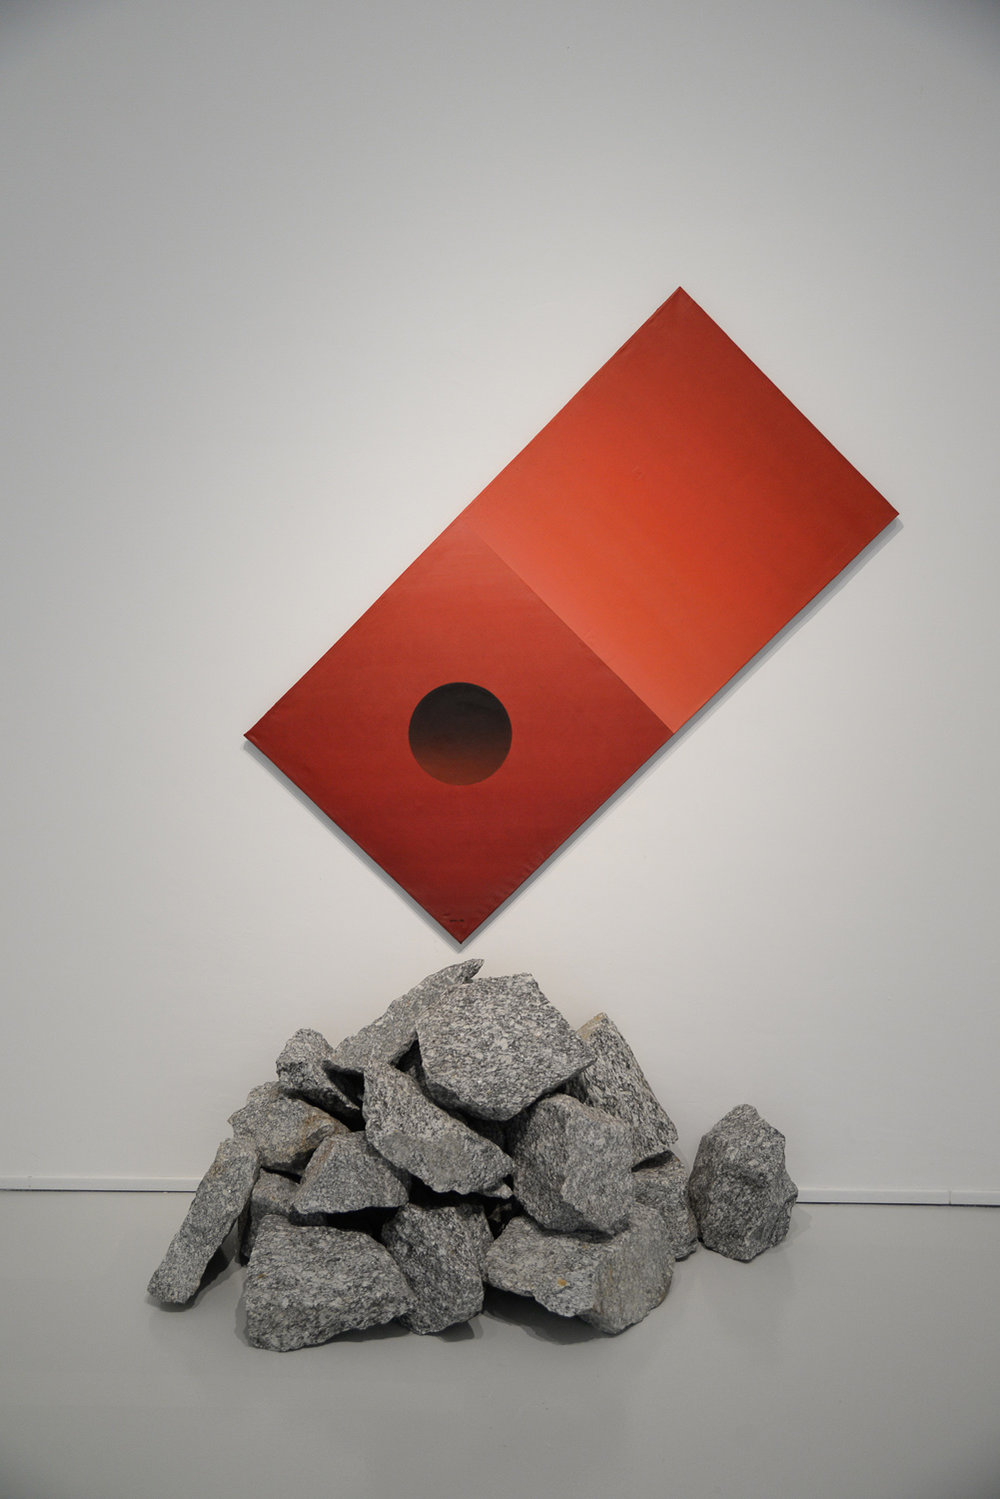 Po Po, 'Red Cube', 1986, oil on canvas, paper collage and gneiss, 218 x 154 x 50 cm. Collection of National Gallery Singapore. © Hla Oo and Po Po; image courtesy of Po Po and Yavuz Gallery.